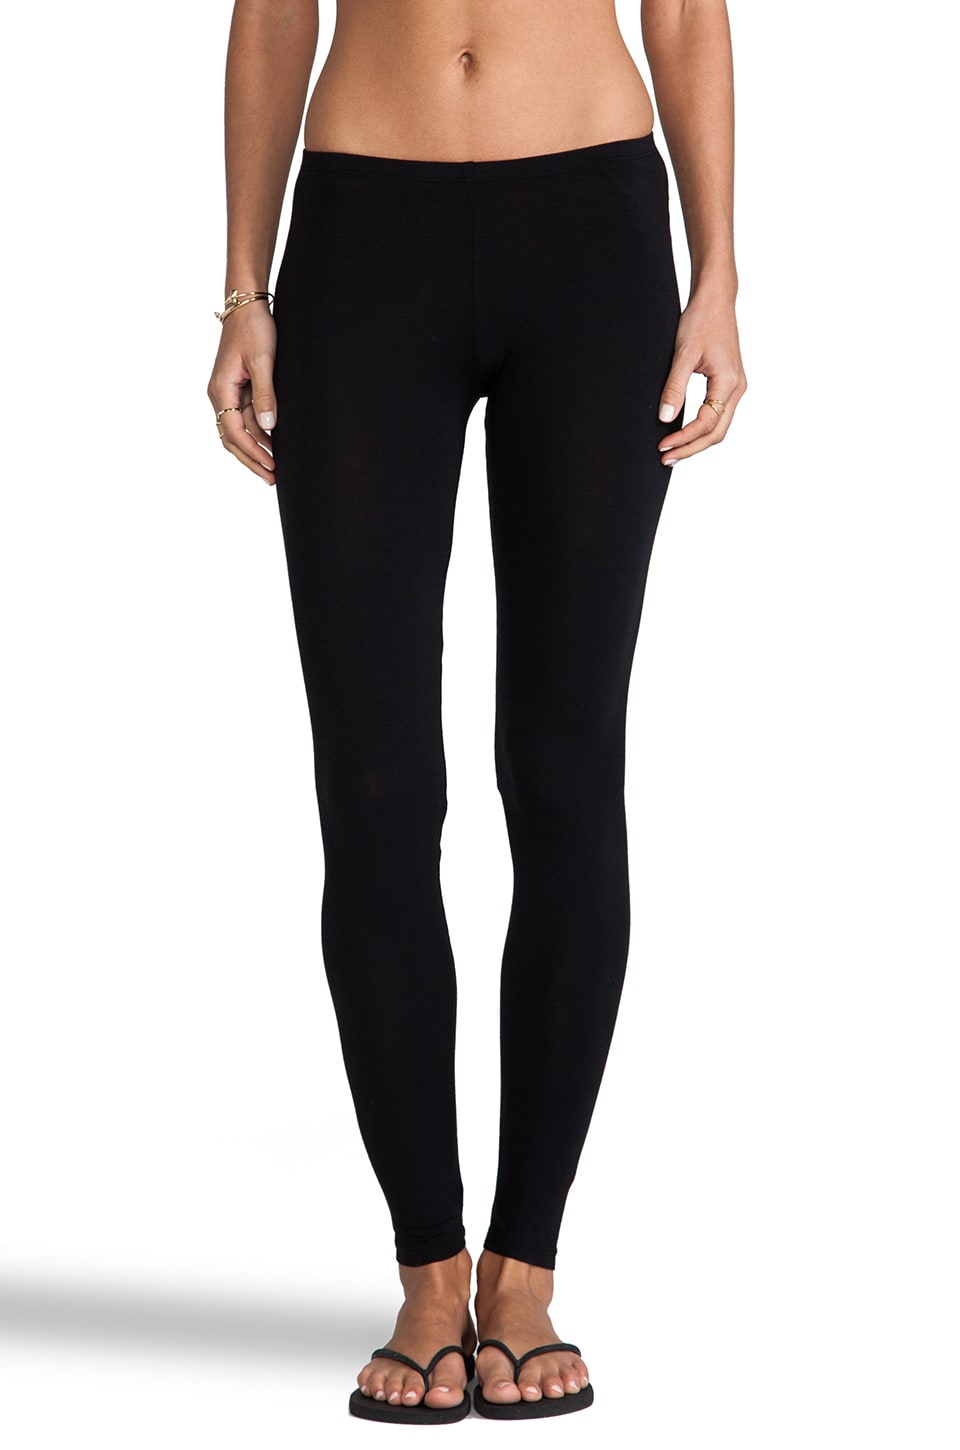 Splendid Modal Lycra Legging in Black